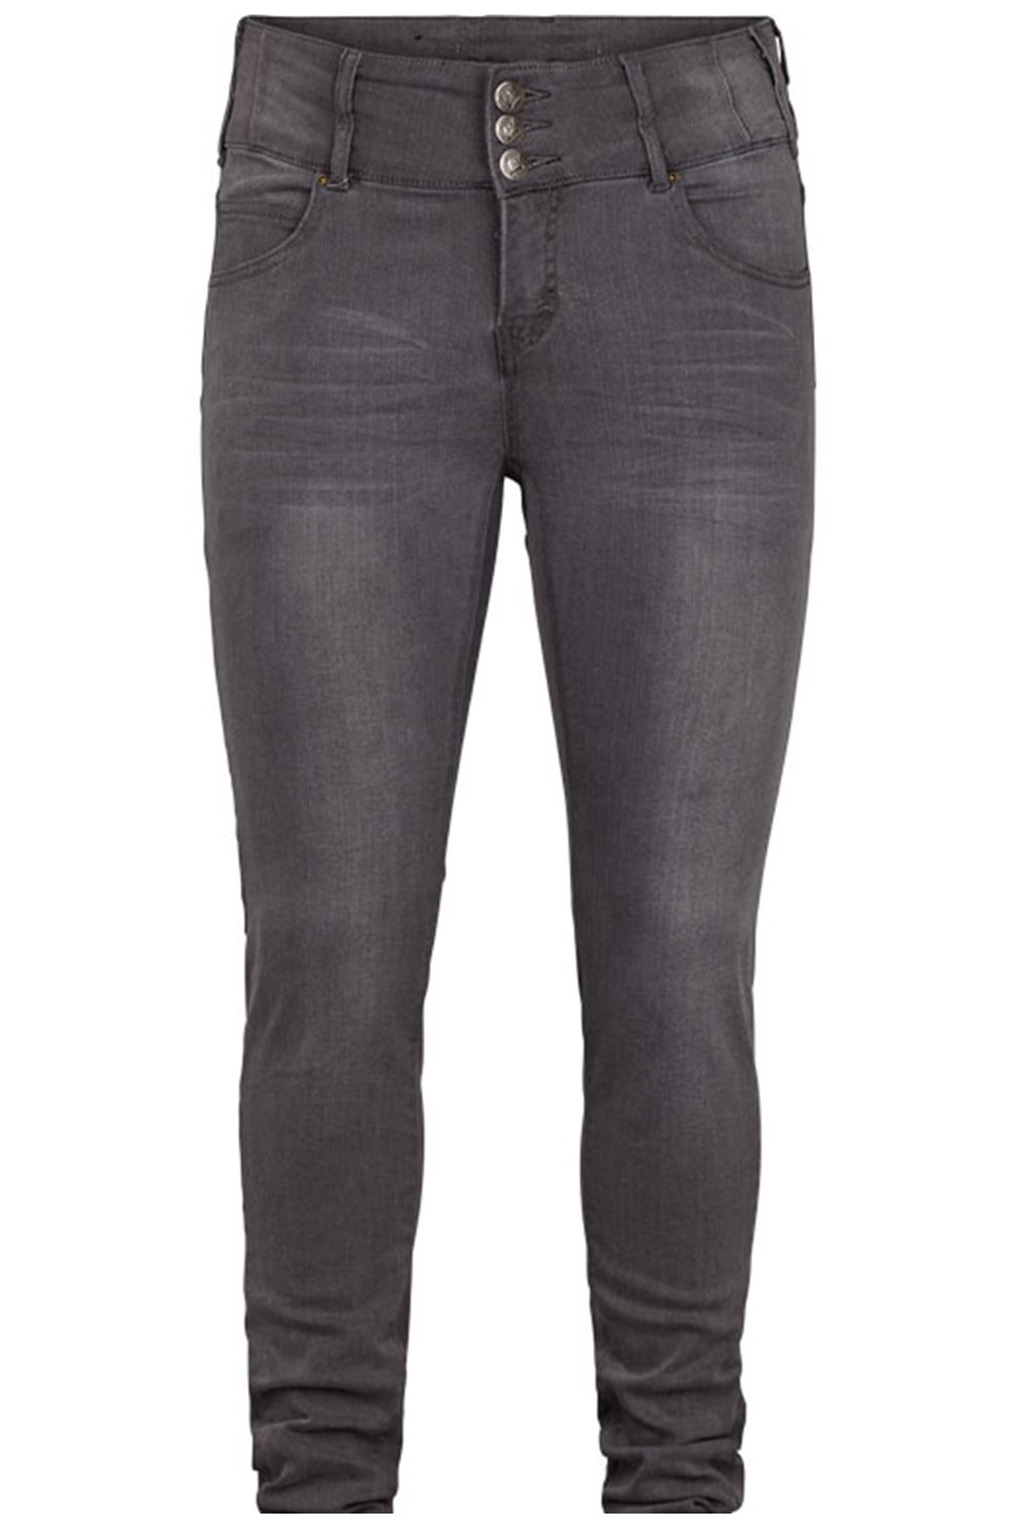 Jeans Adia Rome dubbel taille knoop